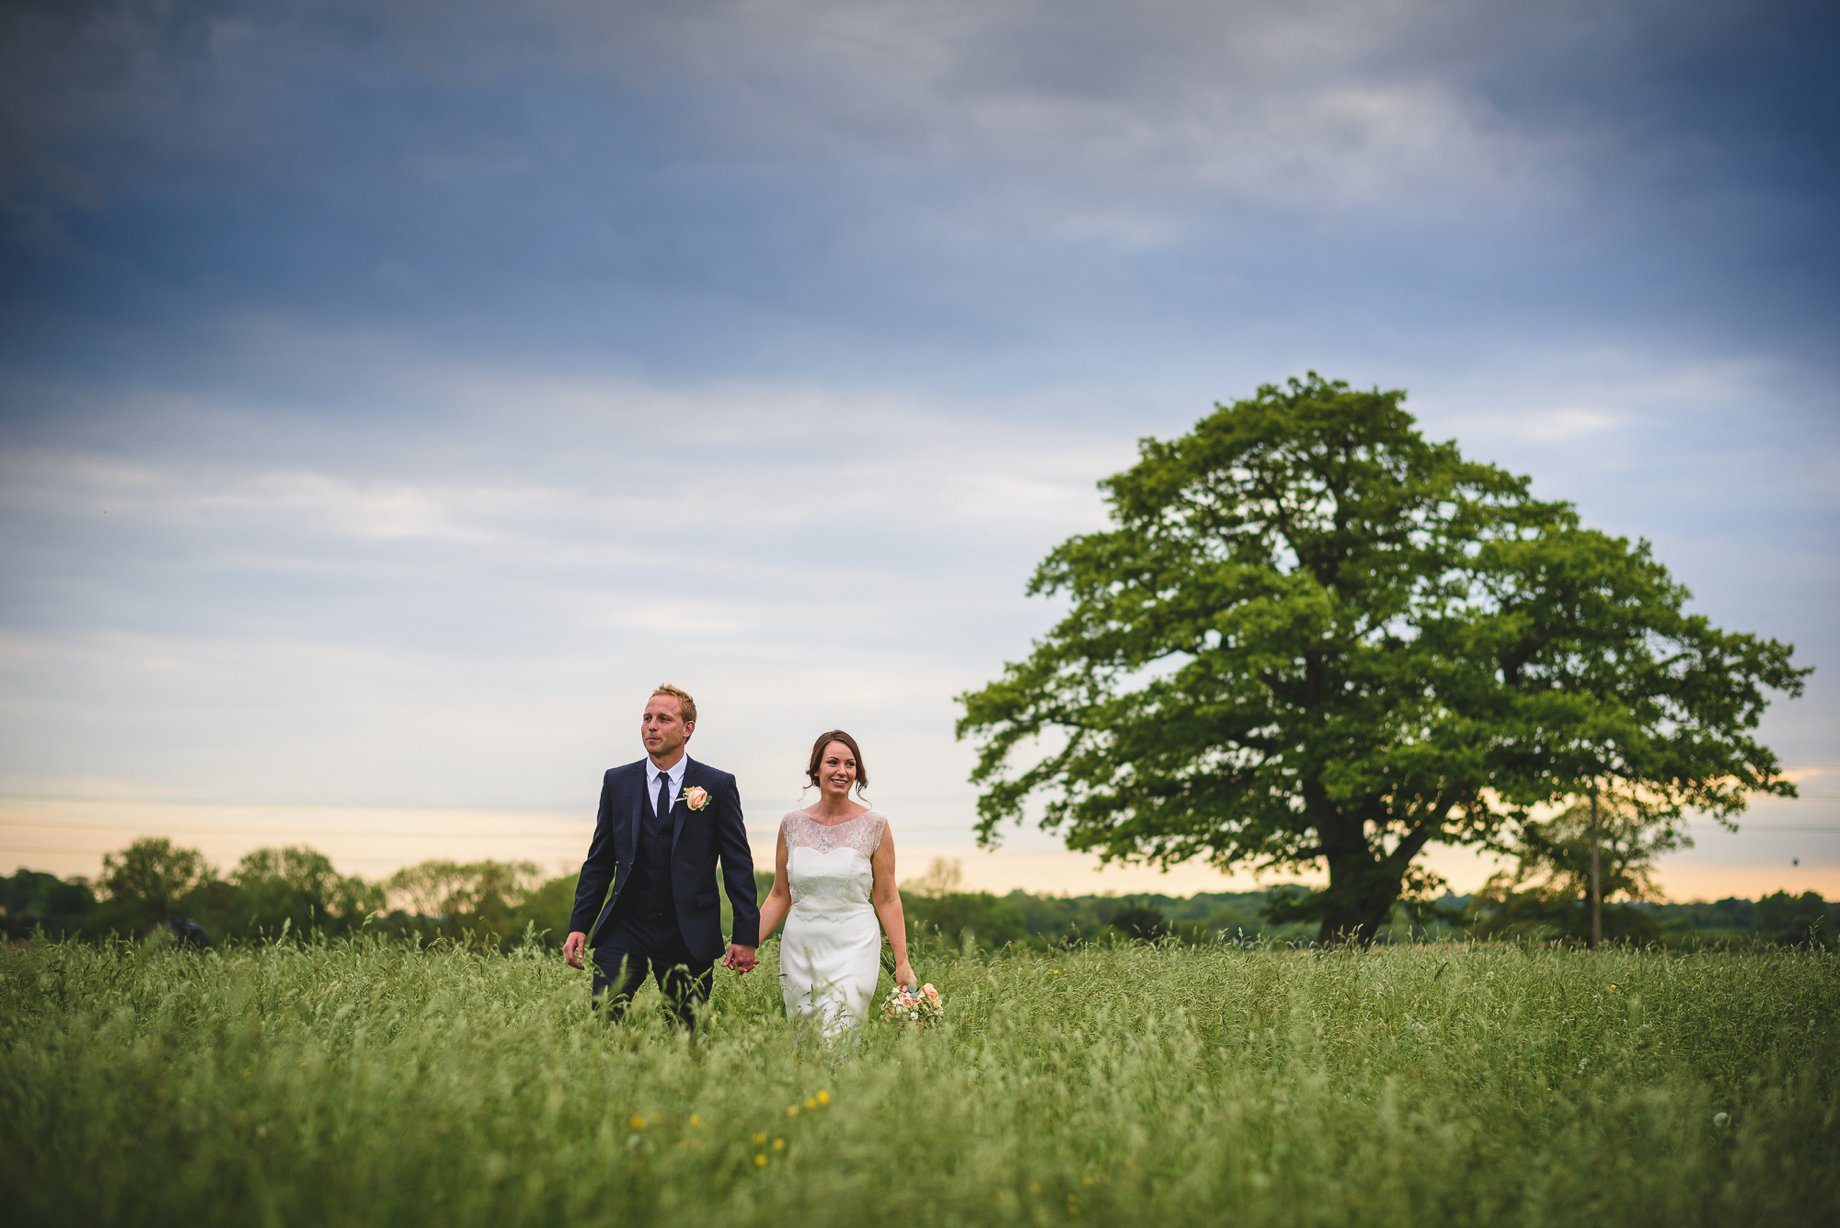 Annabel and Dean - Wiltshire Wedding Photography